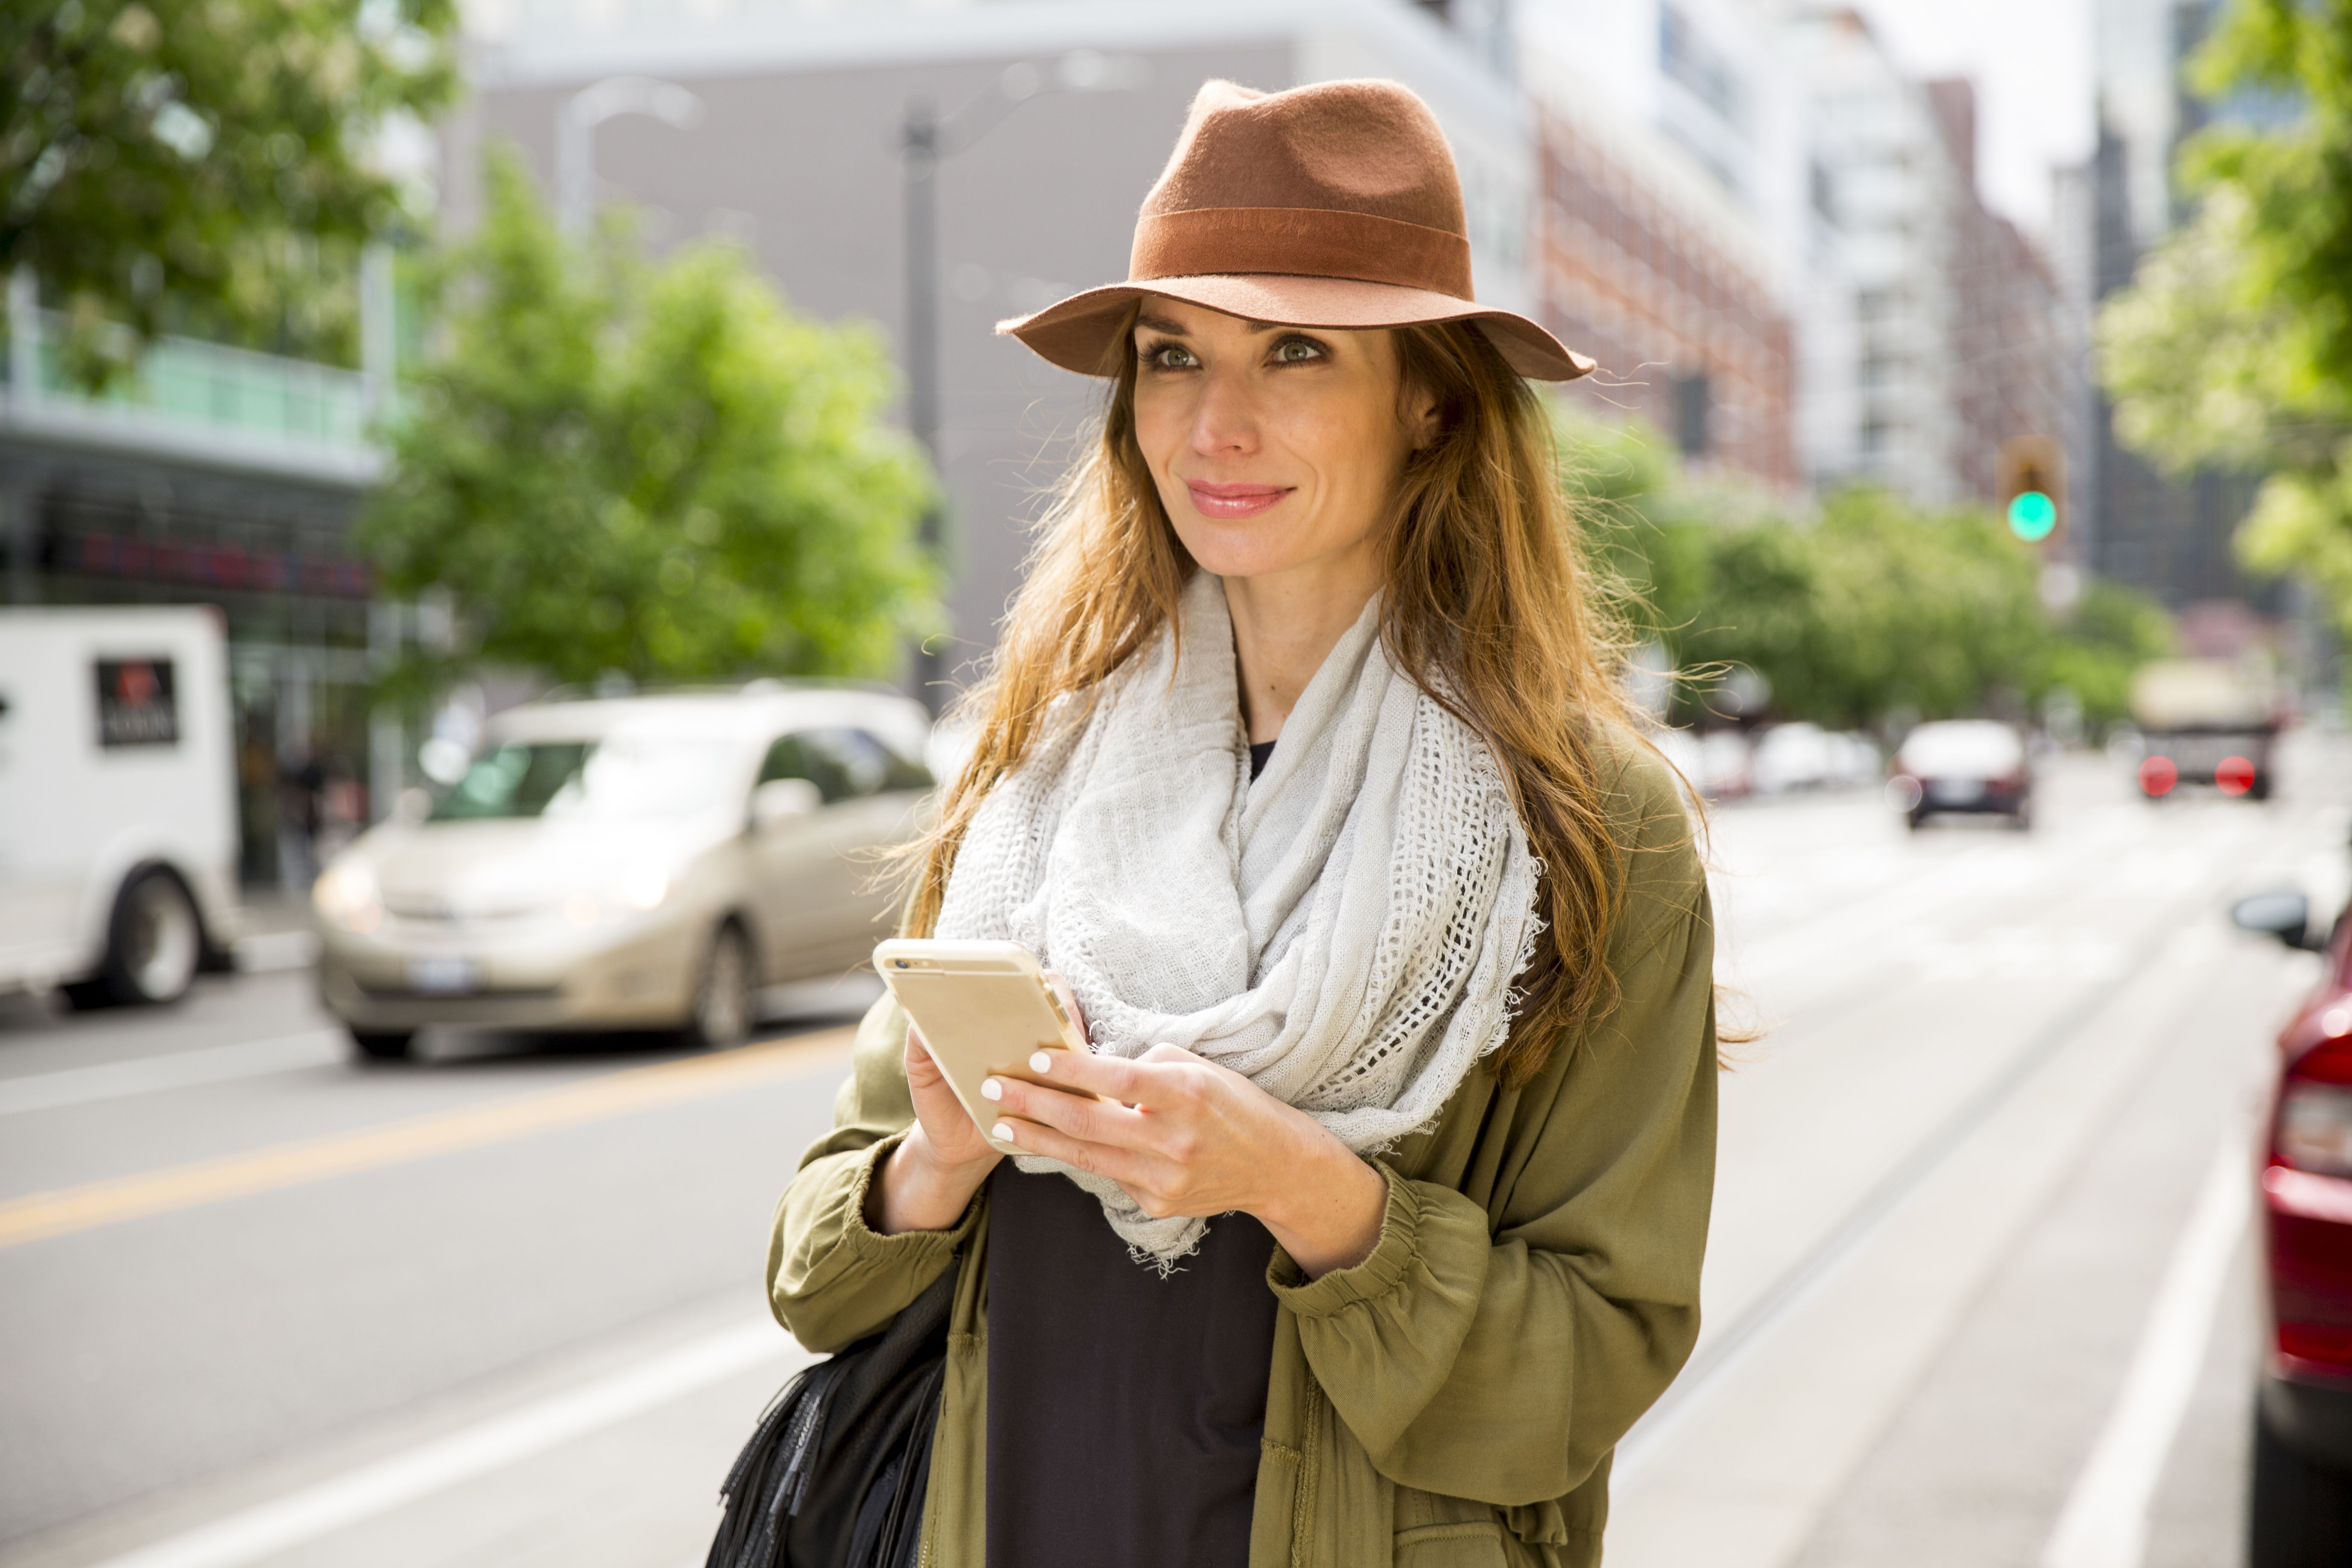 A female wearing a hat, using her smartphone on th street